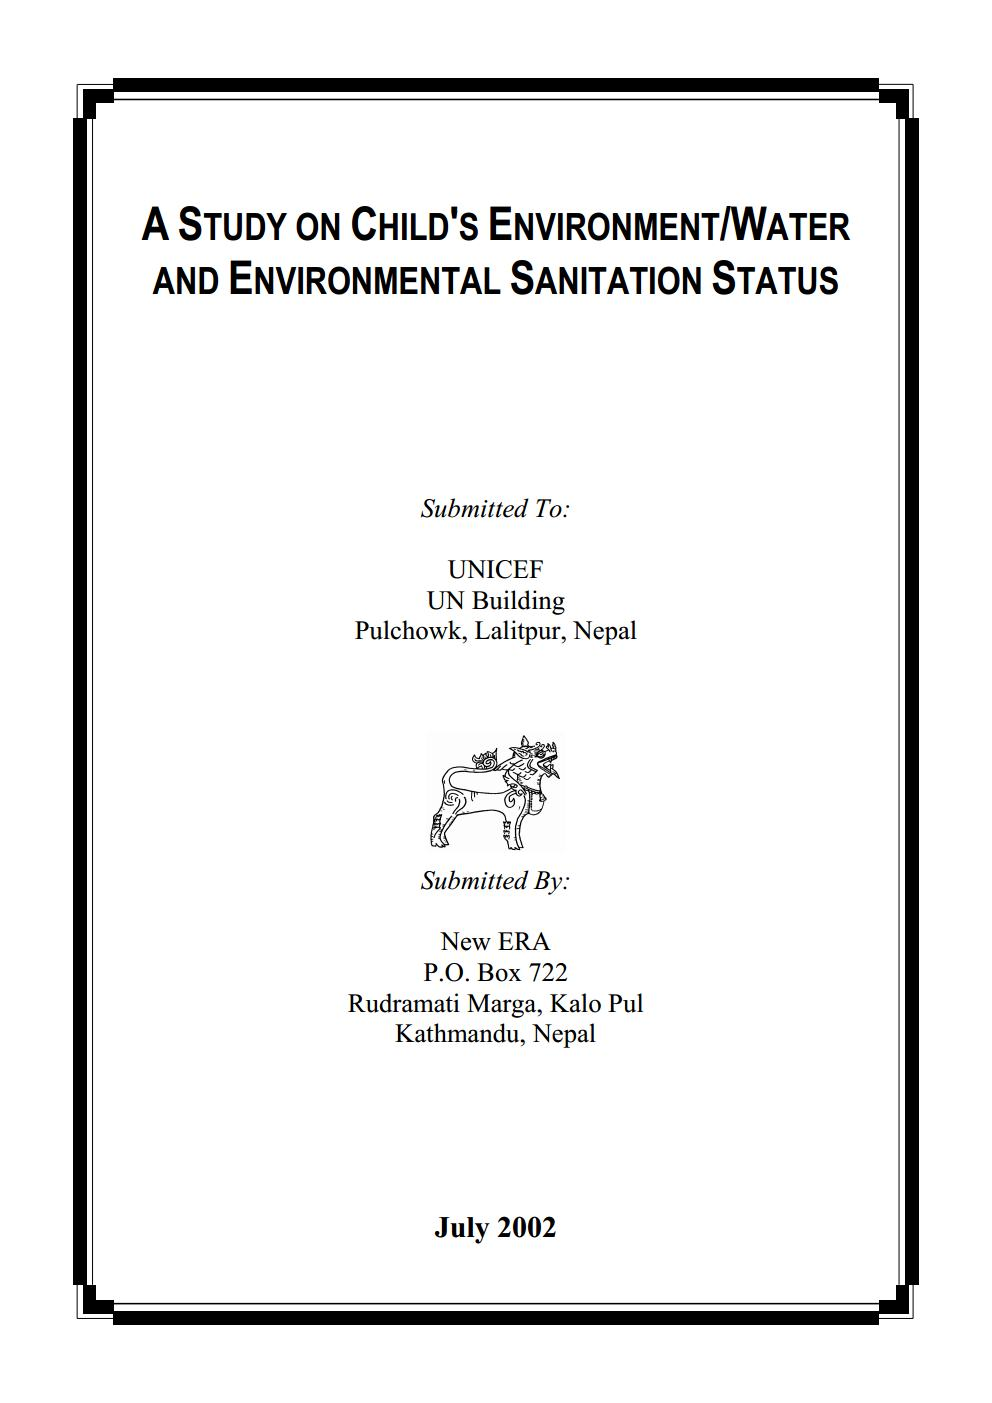 A Study on Child's Environment, Water and Environmental Sanitation Status